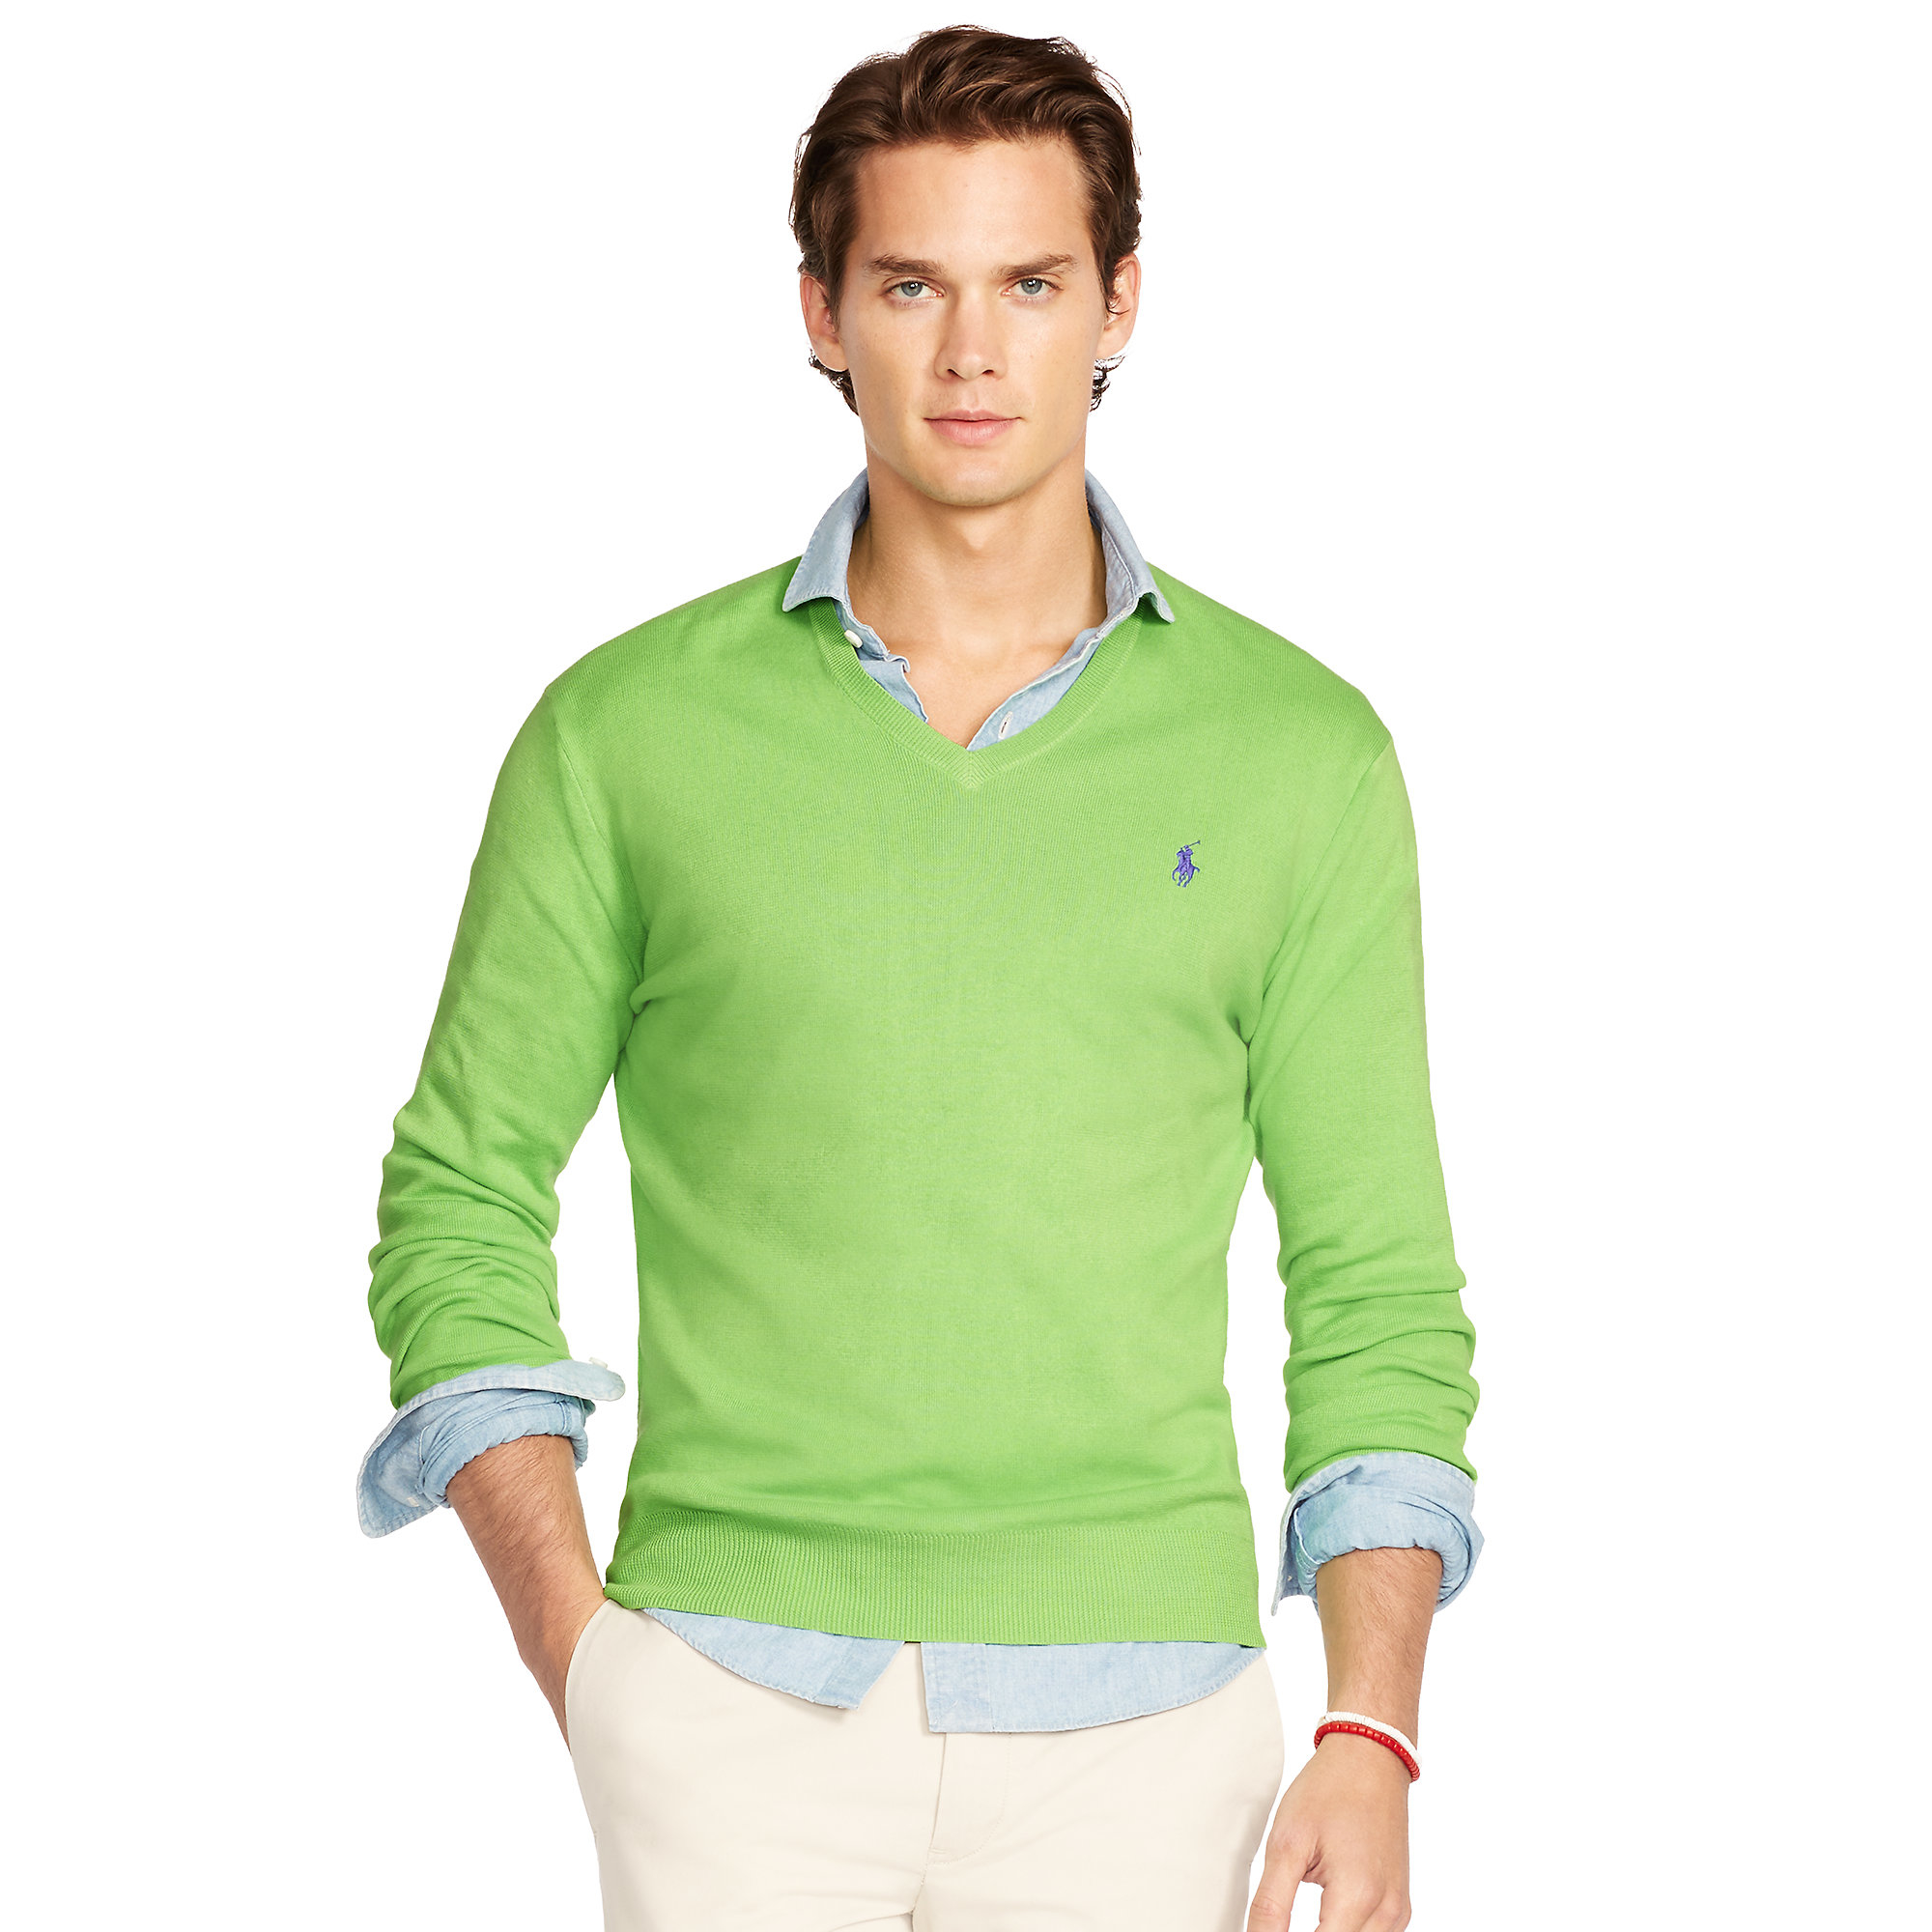 85de415d63 Polo Ralph Lauren Green Pima Cotton V-neck Sweater for men